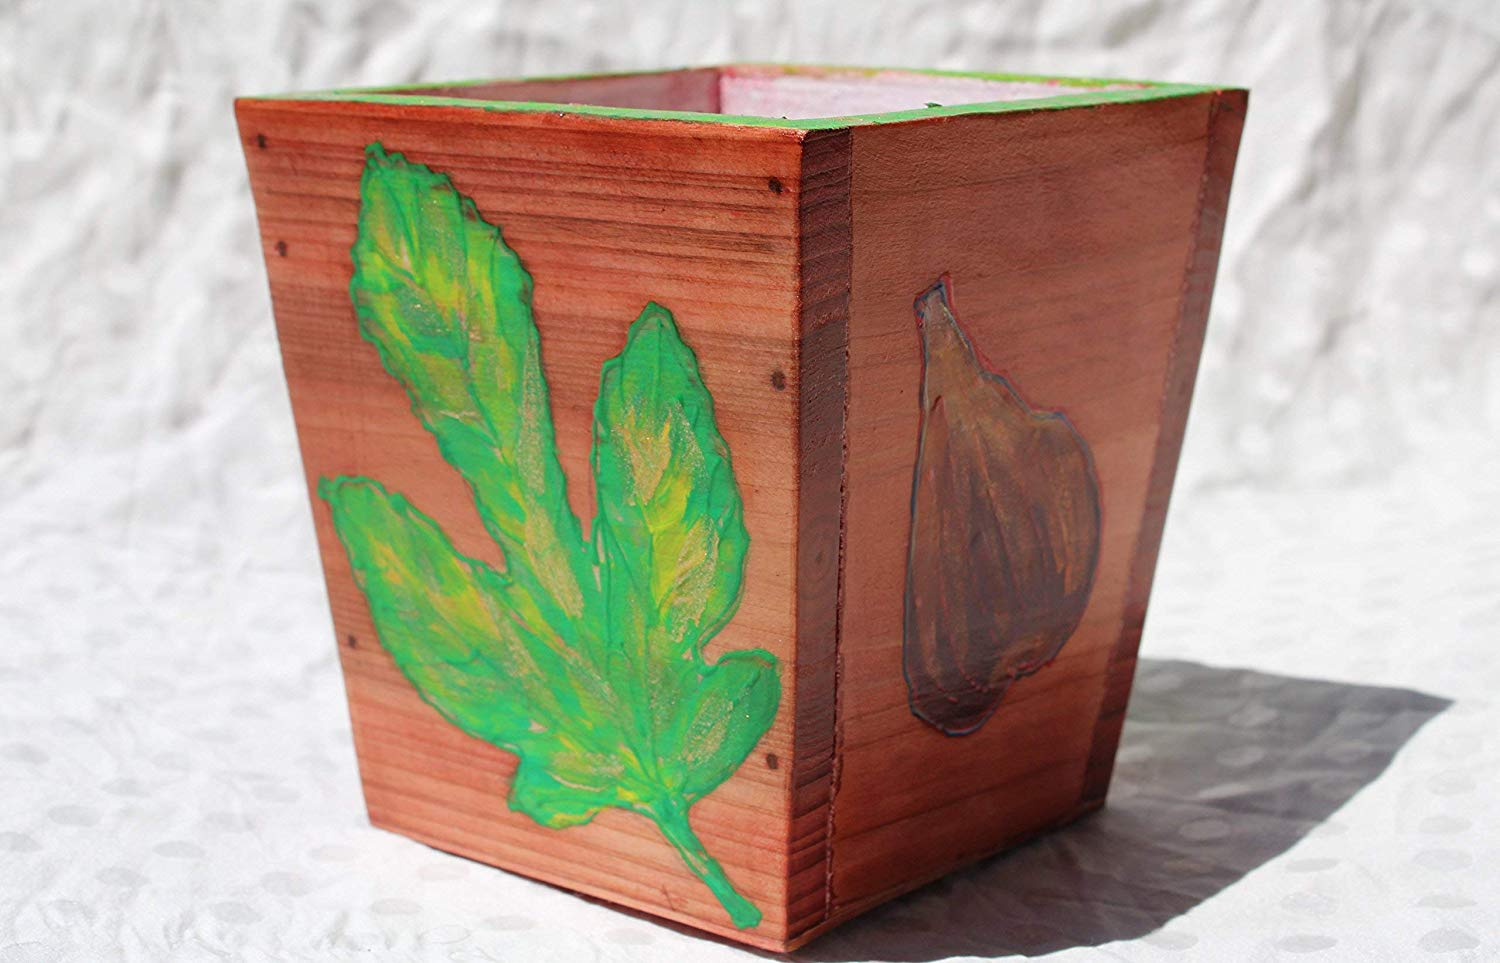 SALE!!!20% OFF,Hand Painted Pot with Acrylic Green Leaf Fig,Wooden Hanging,Pots made of Wood,Green Leaf Fig Wooden Planter,Green Leaf Fig in Pot,Miniature Wall Art,Wedding Decoration,Hand wood Fig.